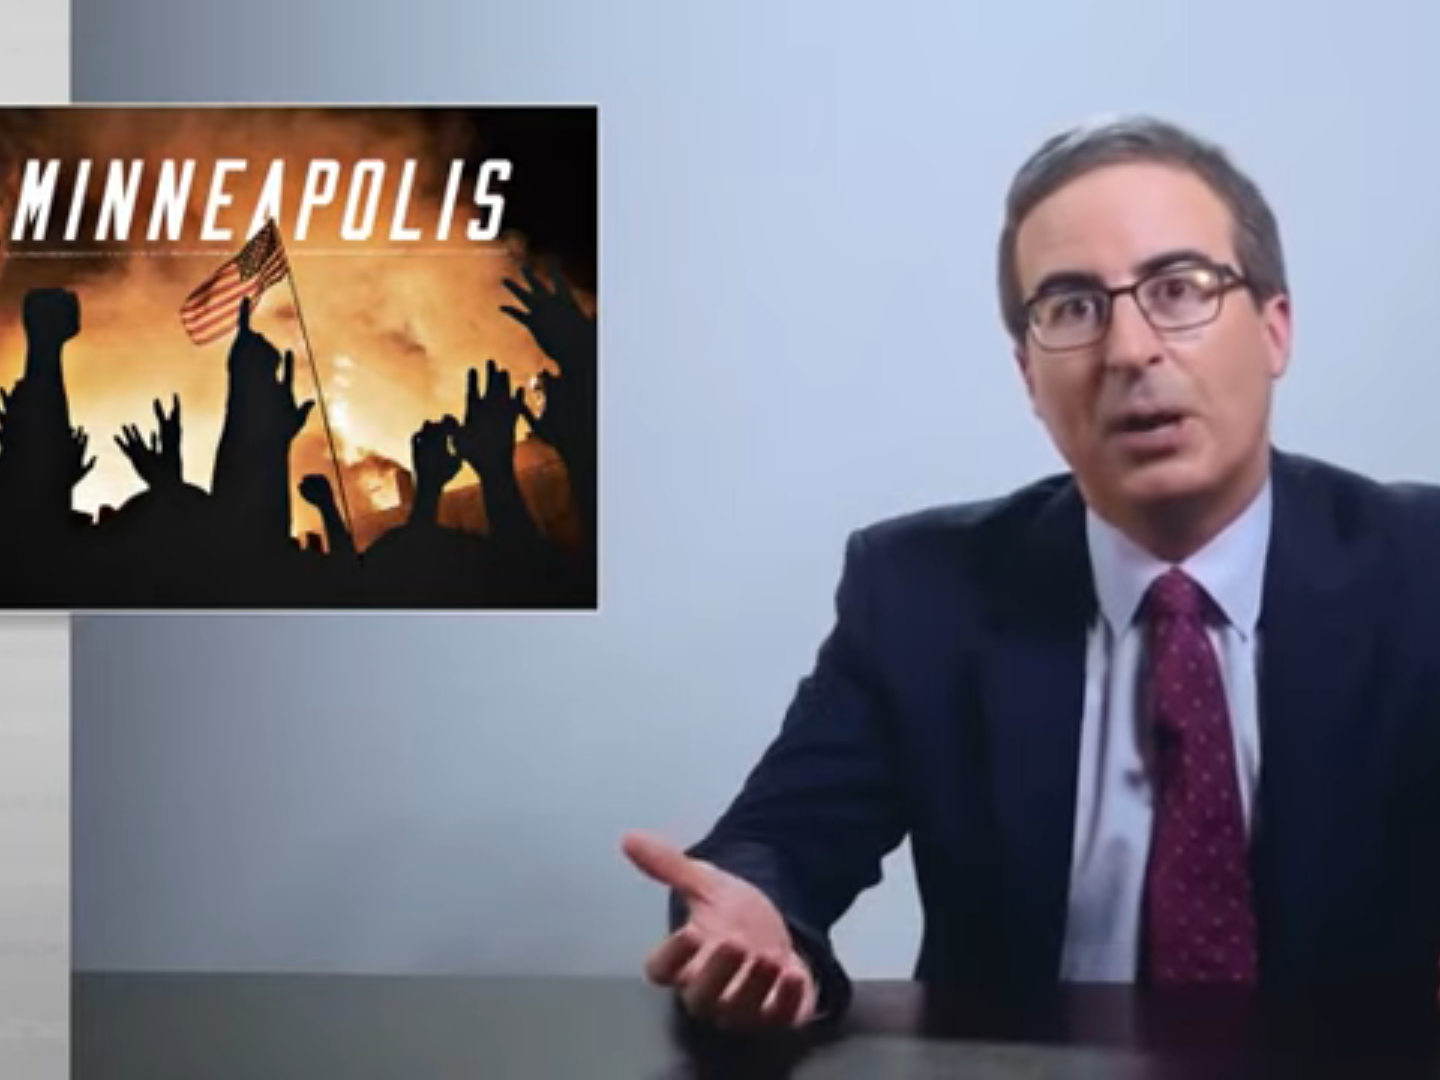 George Floyd protests: John Oliver says US police misconduct 'built on legacy of white supremacy'